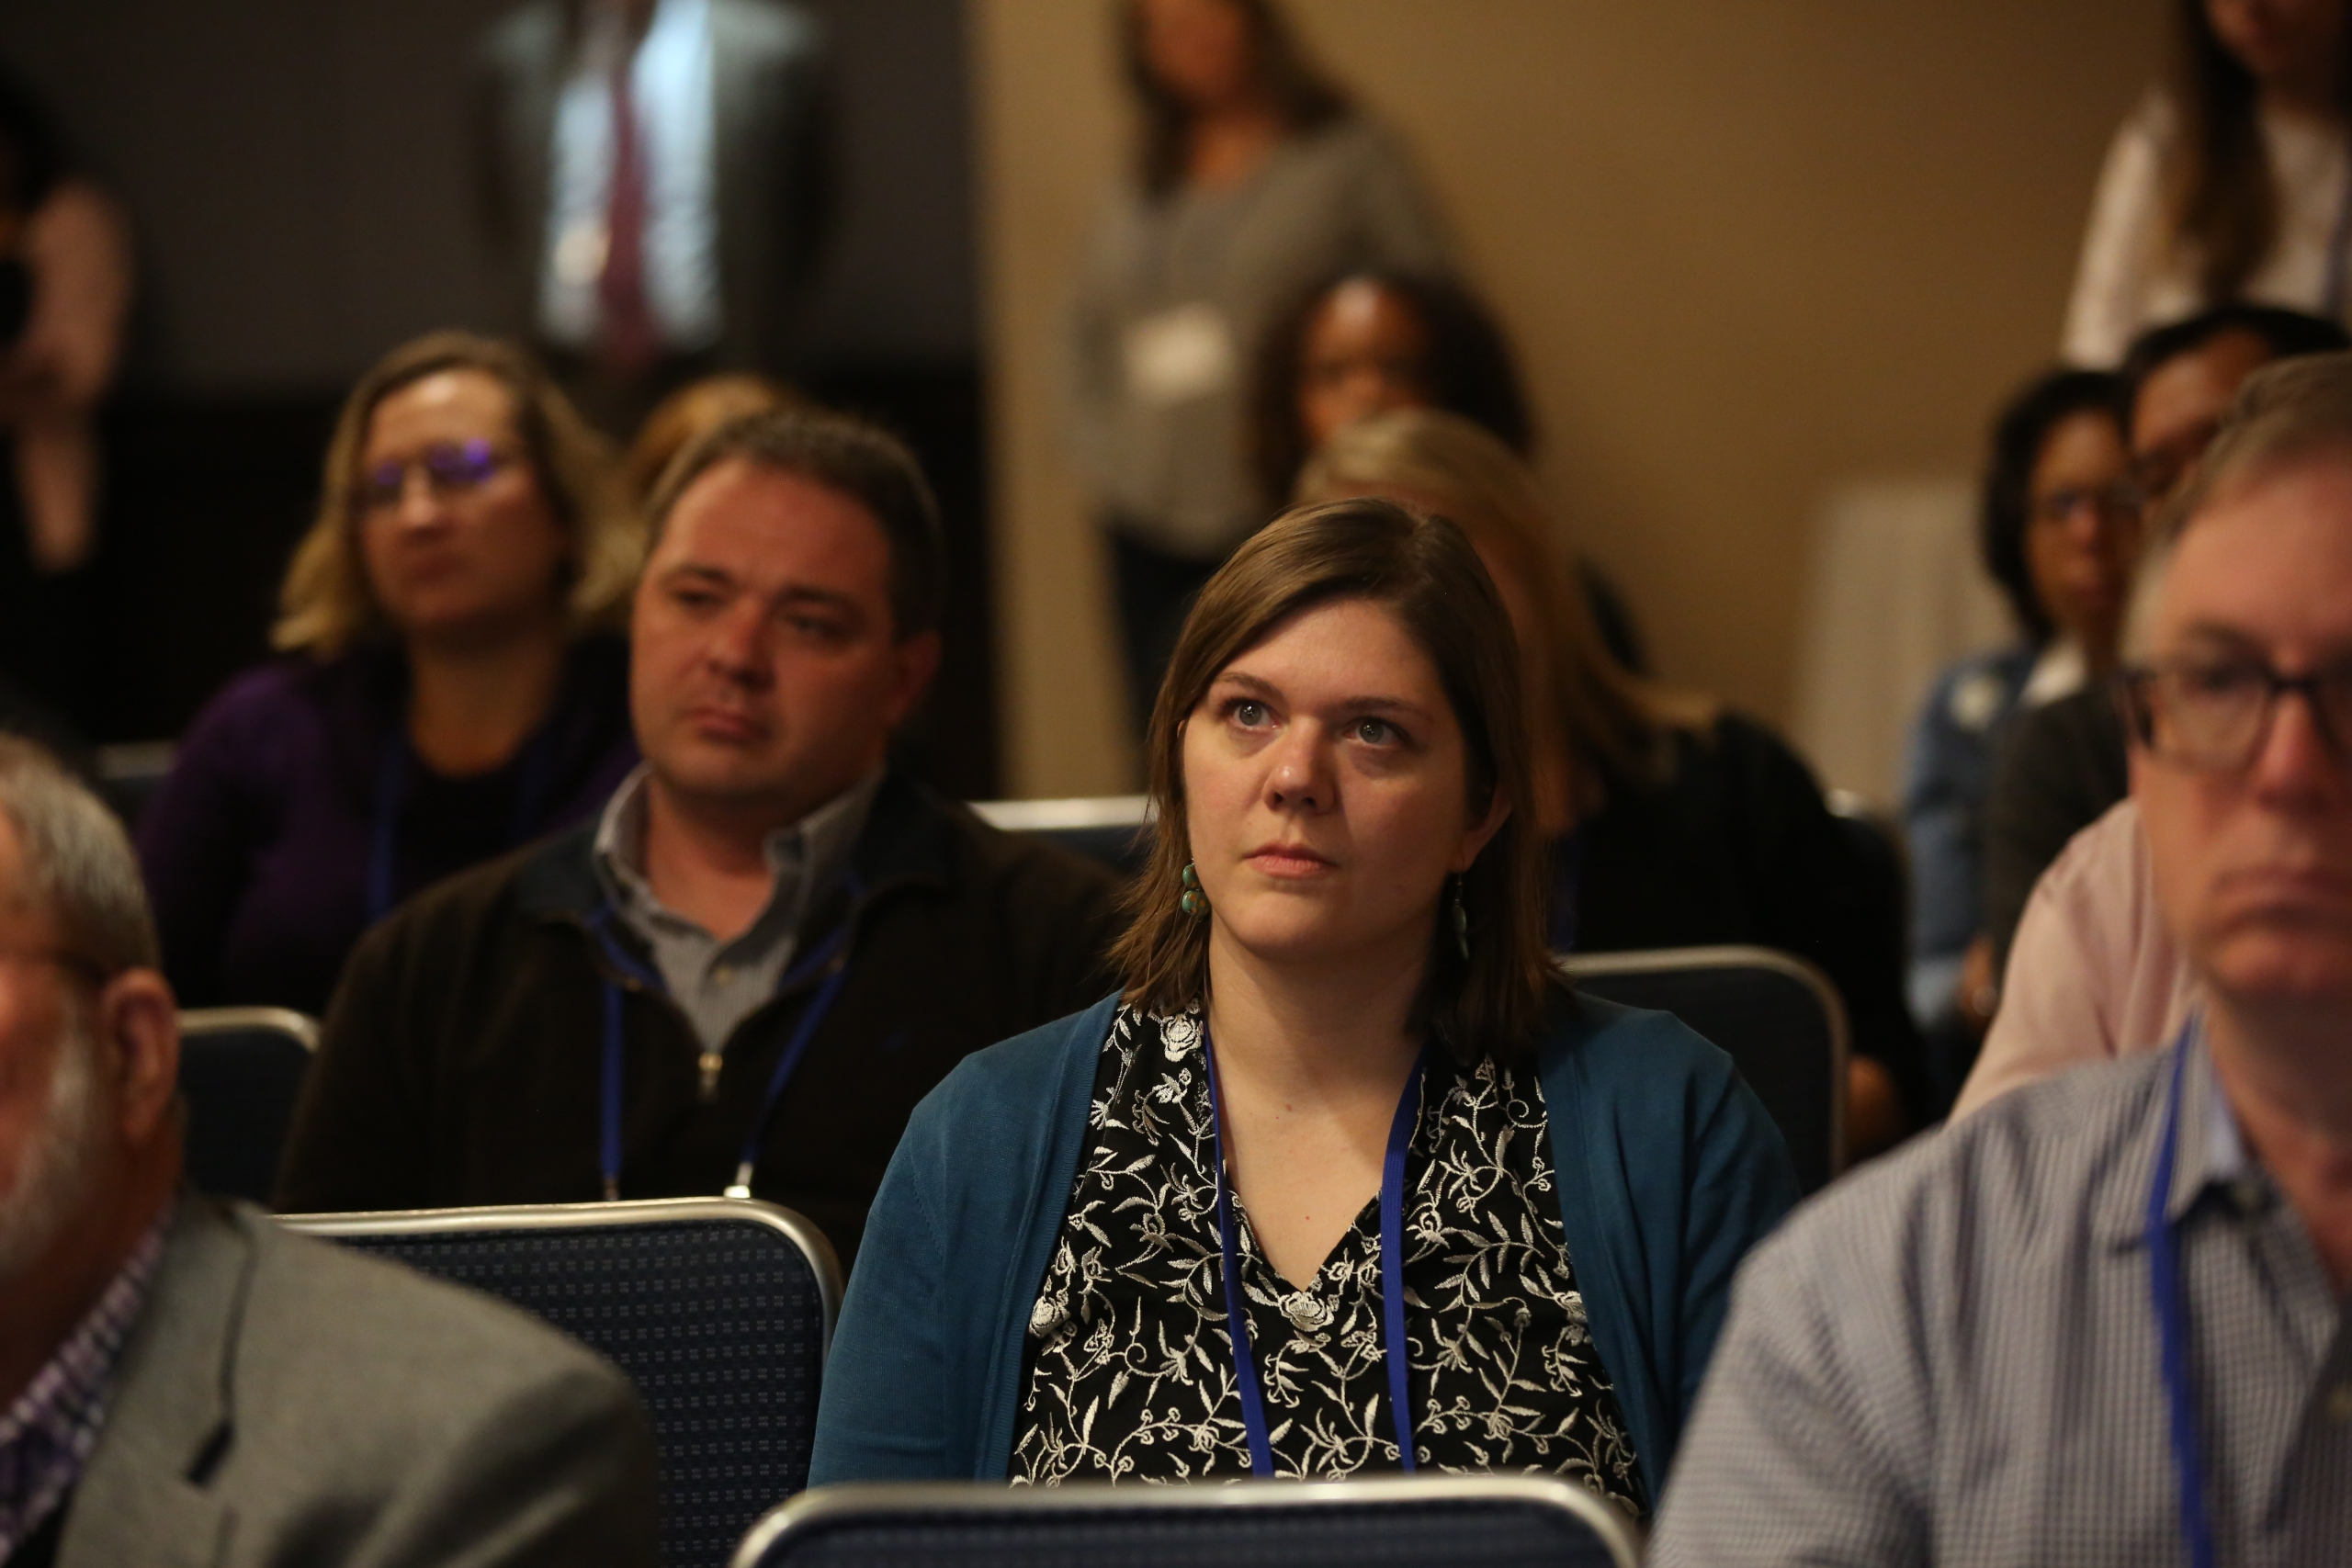 A woman listens in a crowded breakout session